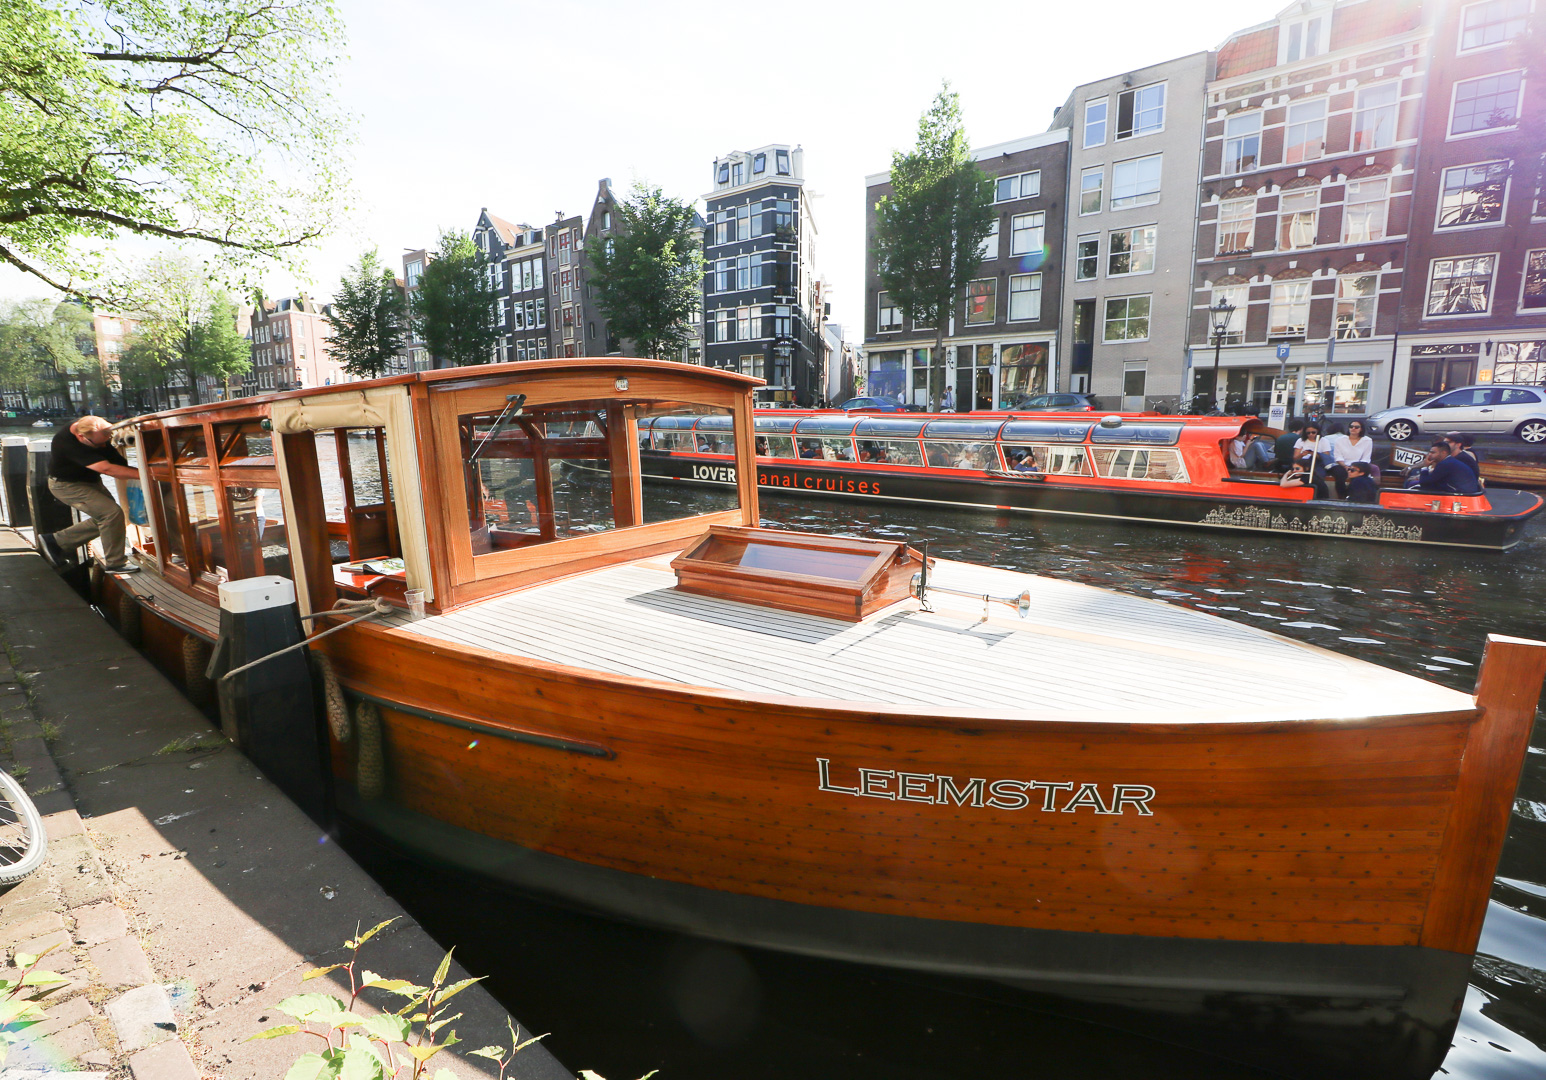 Leemstar Canal Cruise Review Amsterdam | Amsterdam City Guide | Cobalt Chronicles | Washington, DC | Travel Blogger